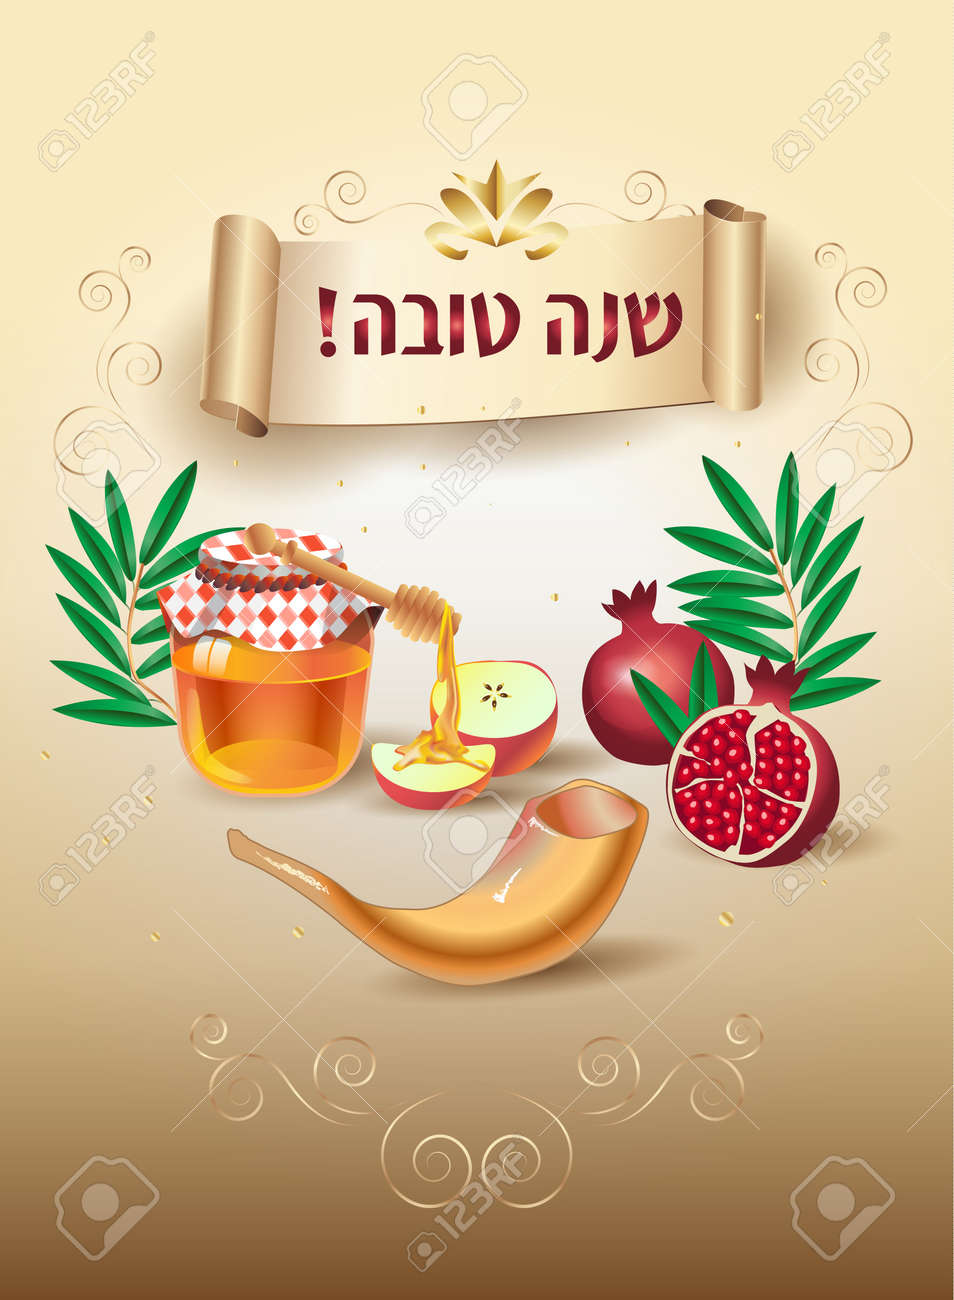 Image result for greeting hebrew rosh hashanah